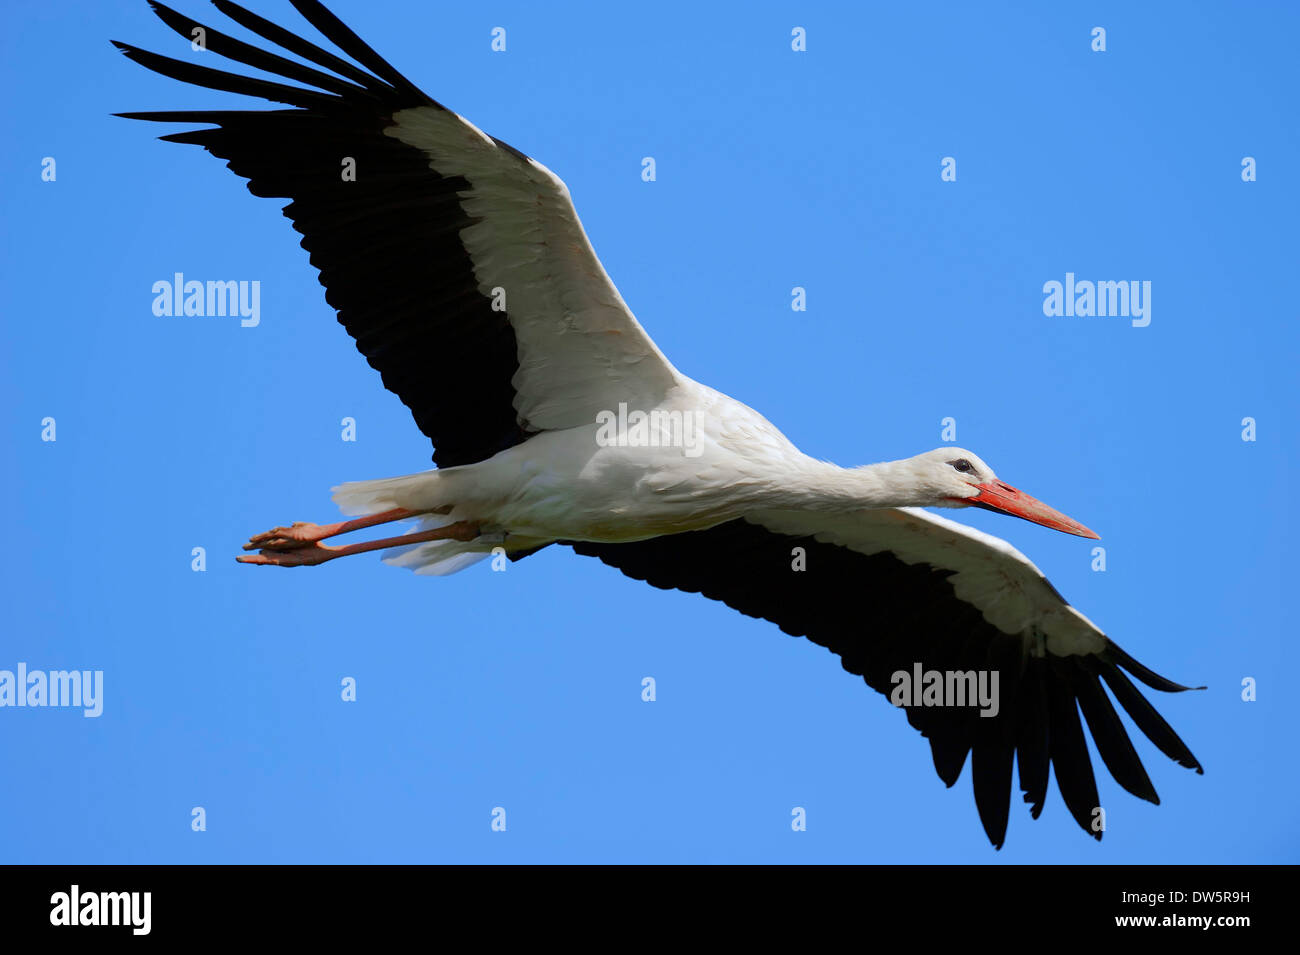 White Stork (Ciconia ciconia), North Rhine-Westphalia, Germany - Stock Image